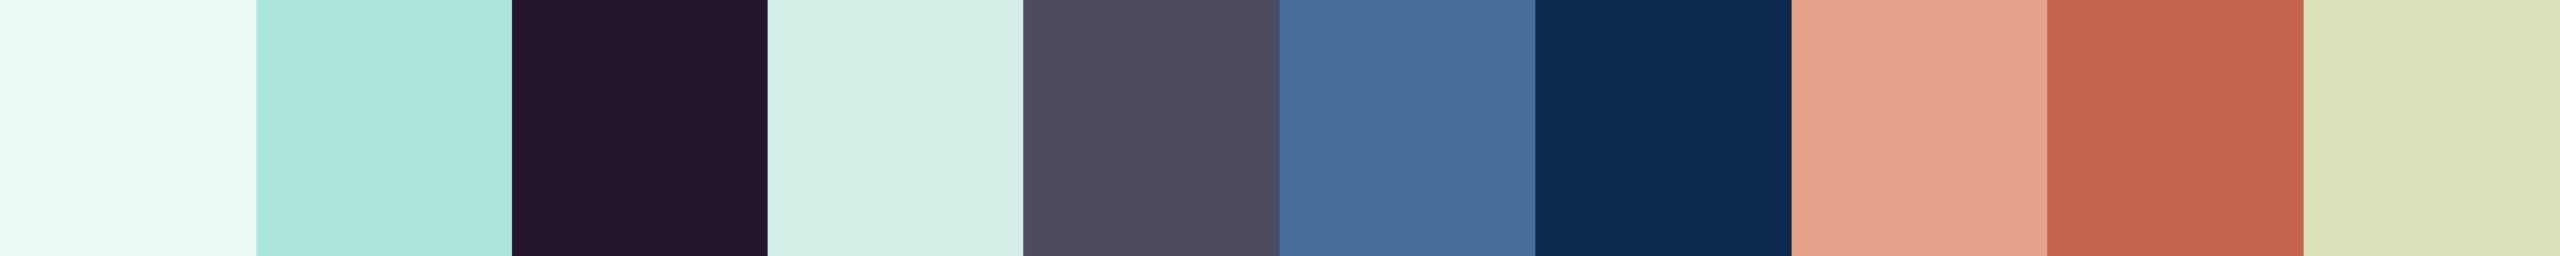 558 Ramla Color Palette